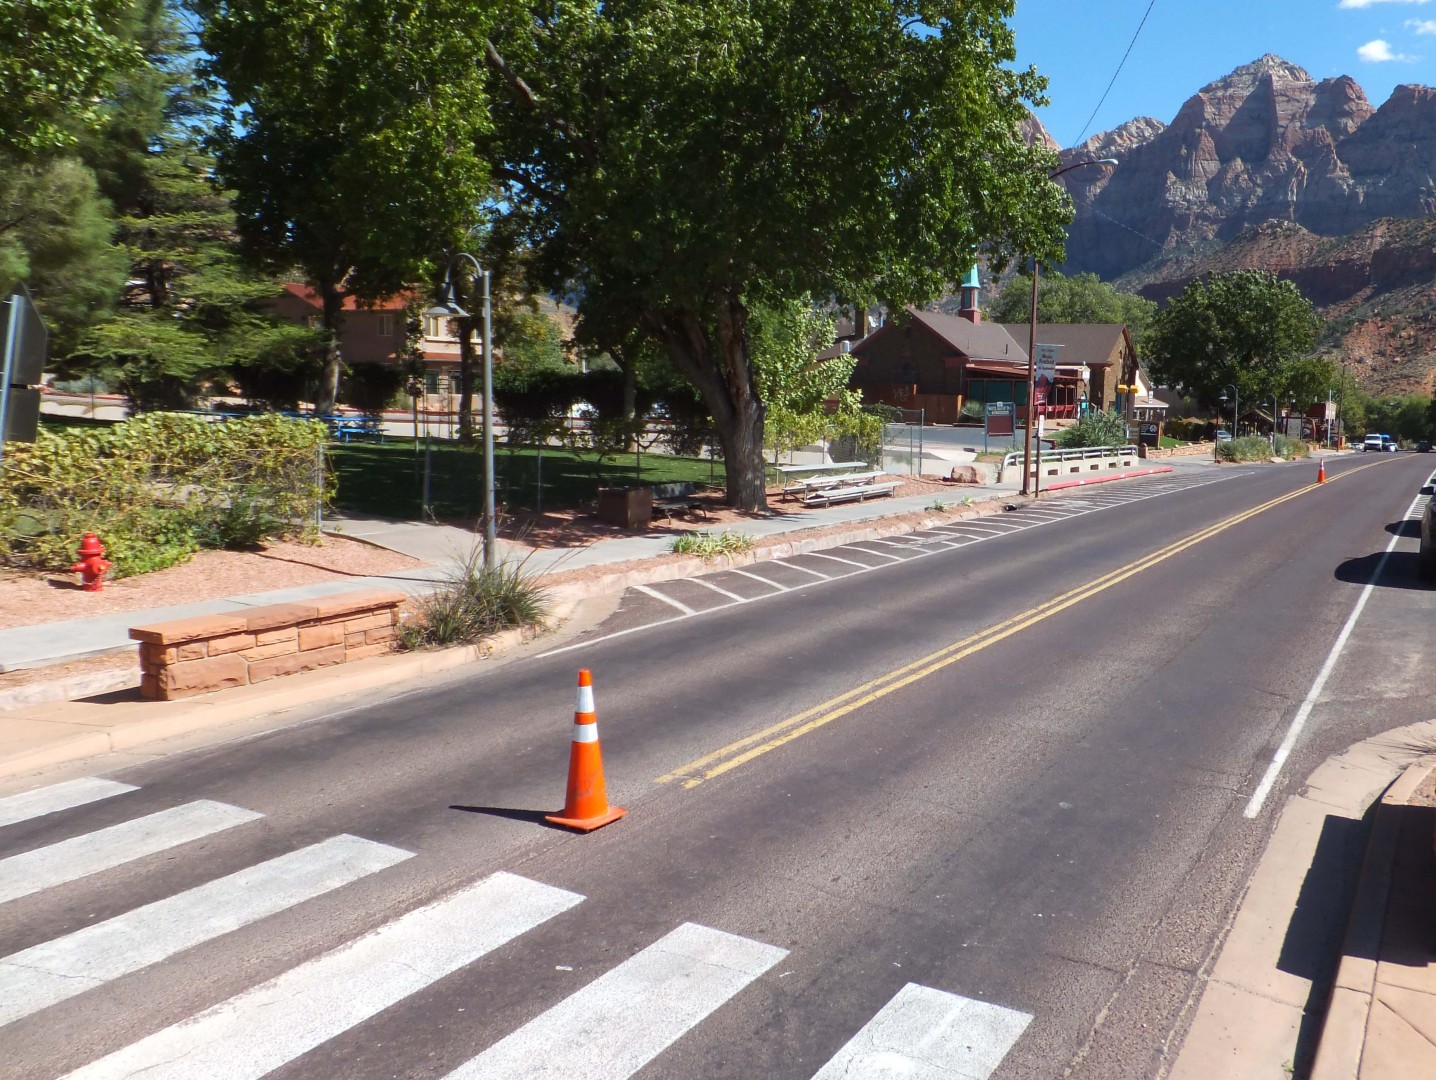 Zion Park Boulevard, empty, since government shutdown closes Zion National Park, impacts park's gateway town of Springdale, Utah, Oct. 2, 2013 | Photo by Dan Mabbutt, St. George News